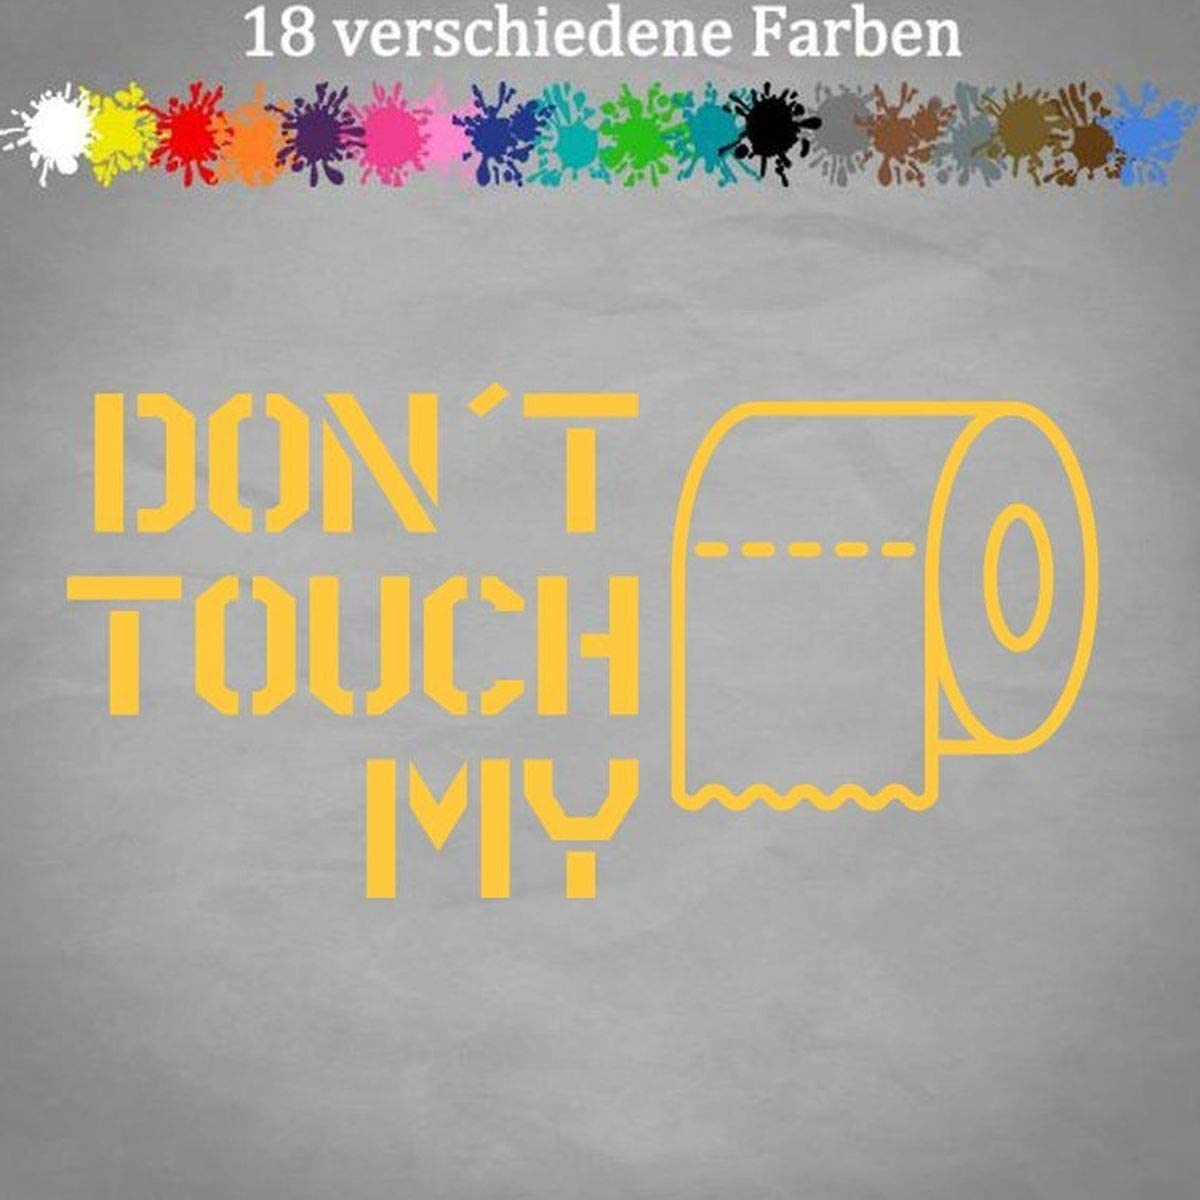 Toilet Paper Sticker Dont Touch My Toilet Paper Sticker Jdm Hamsters 20 X 12 Cm 21 Yellow Auto